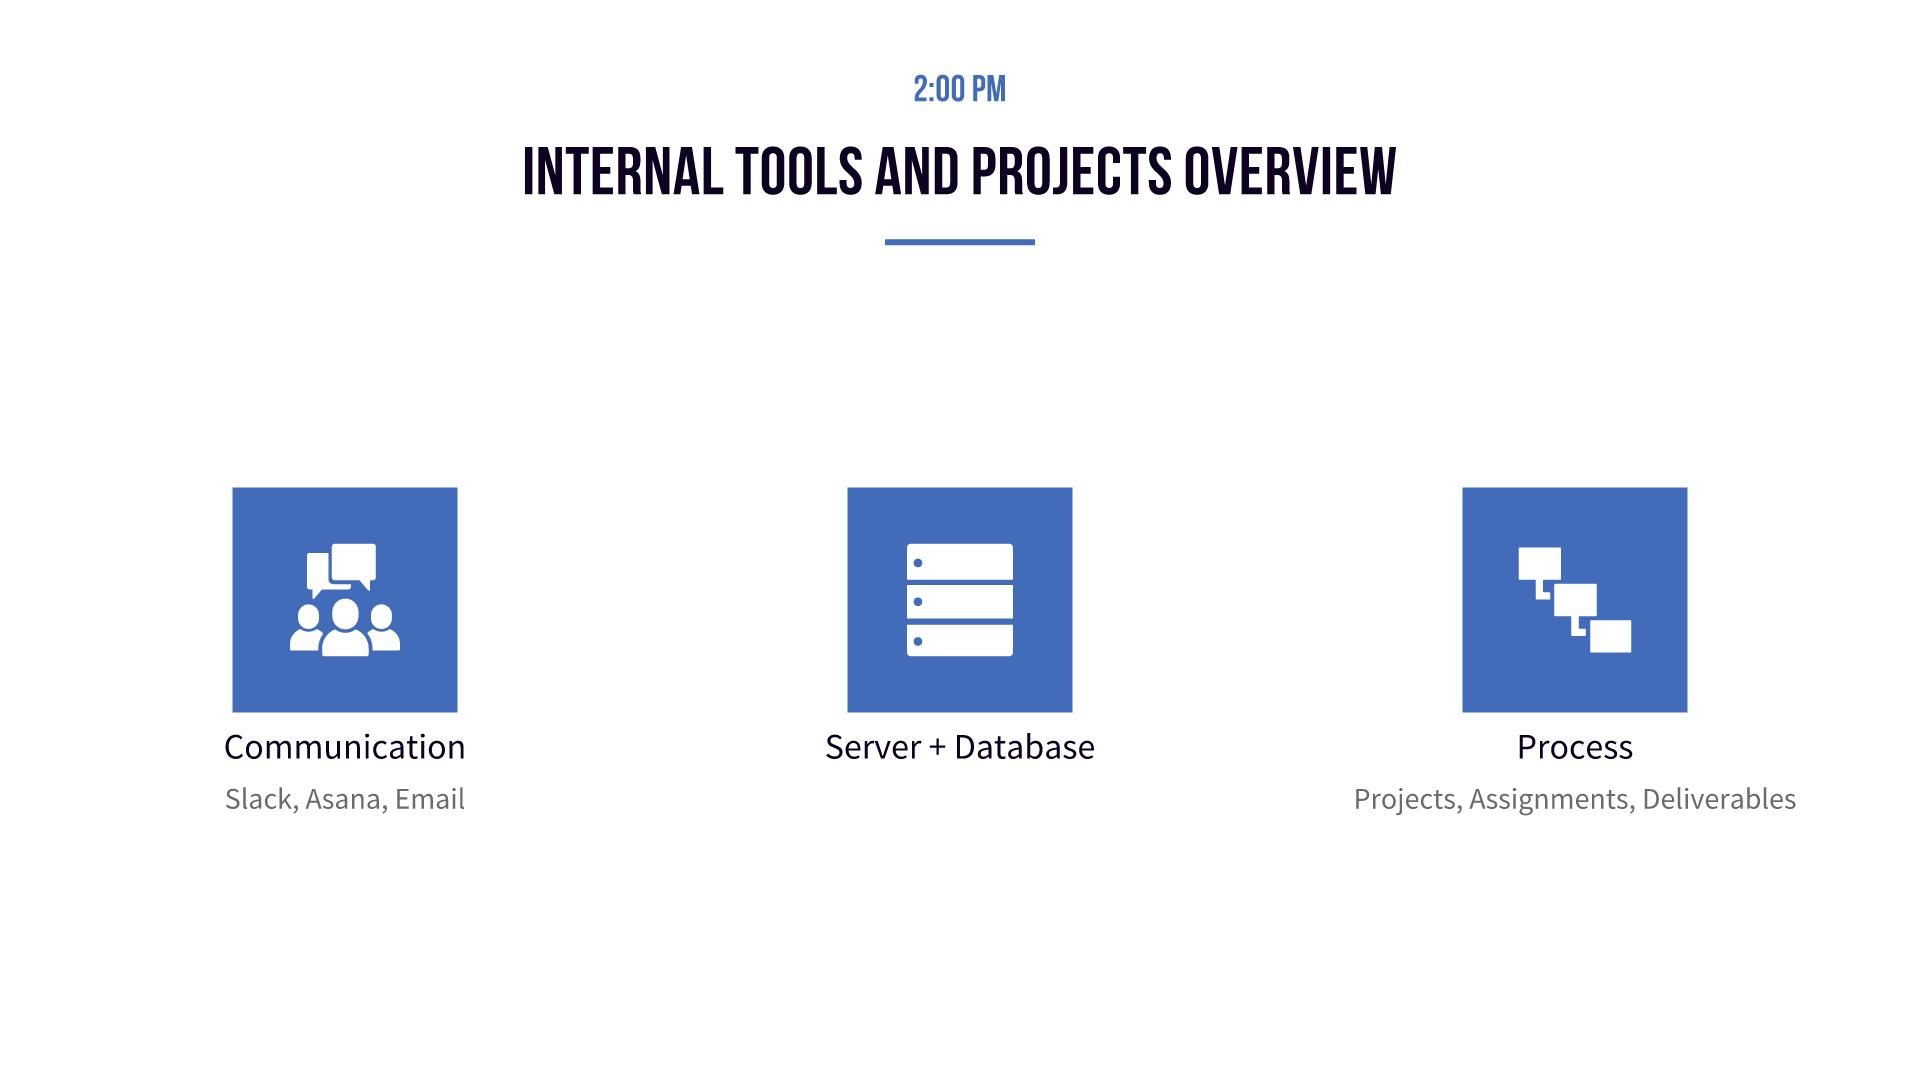 TOOLS/SERVICES